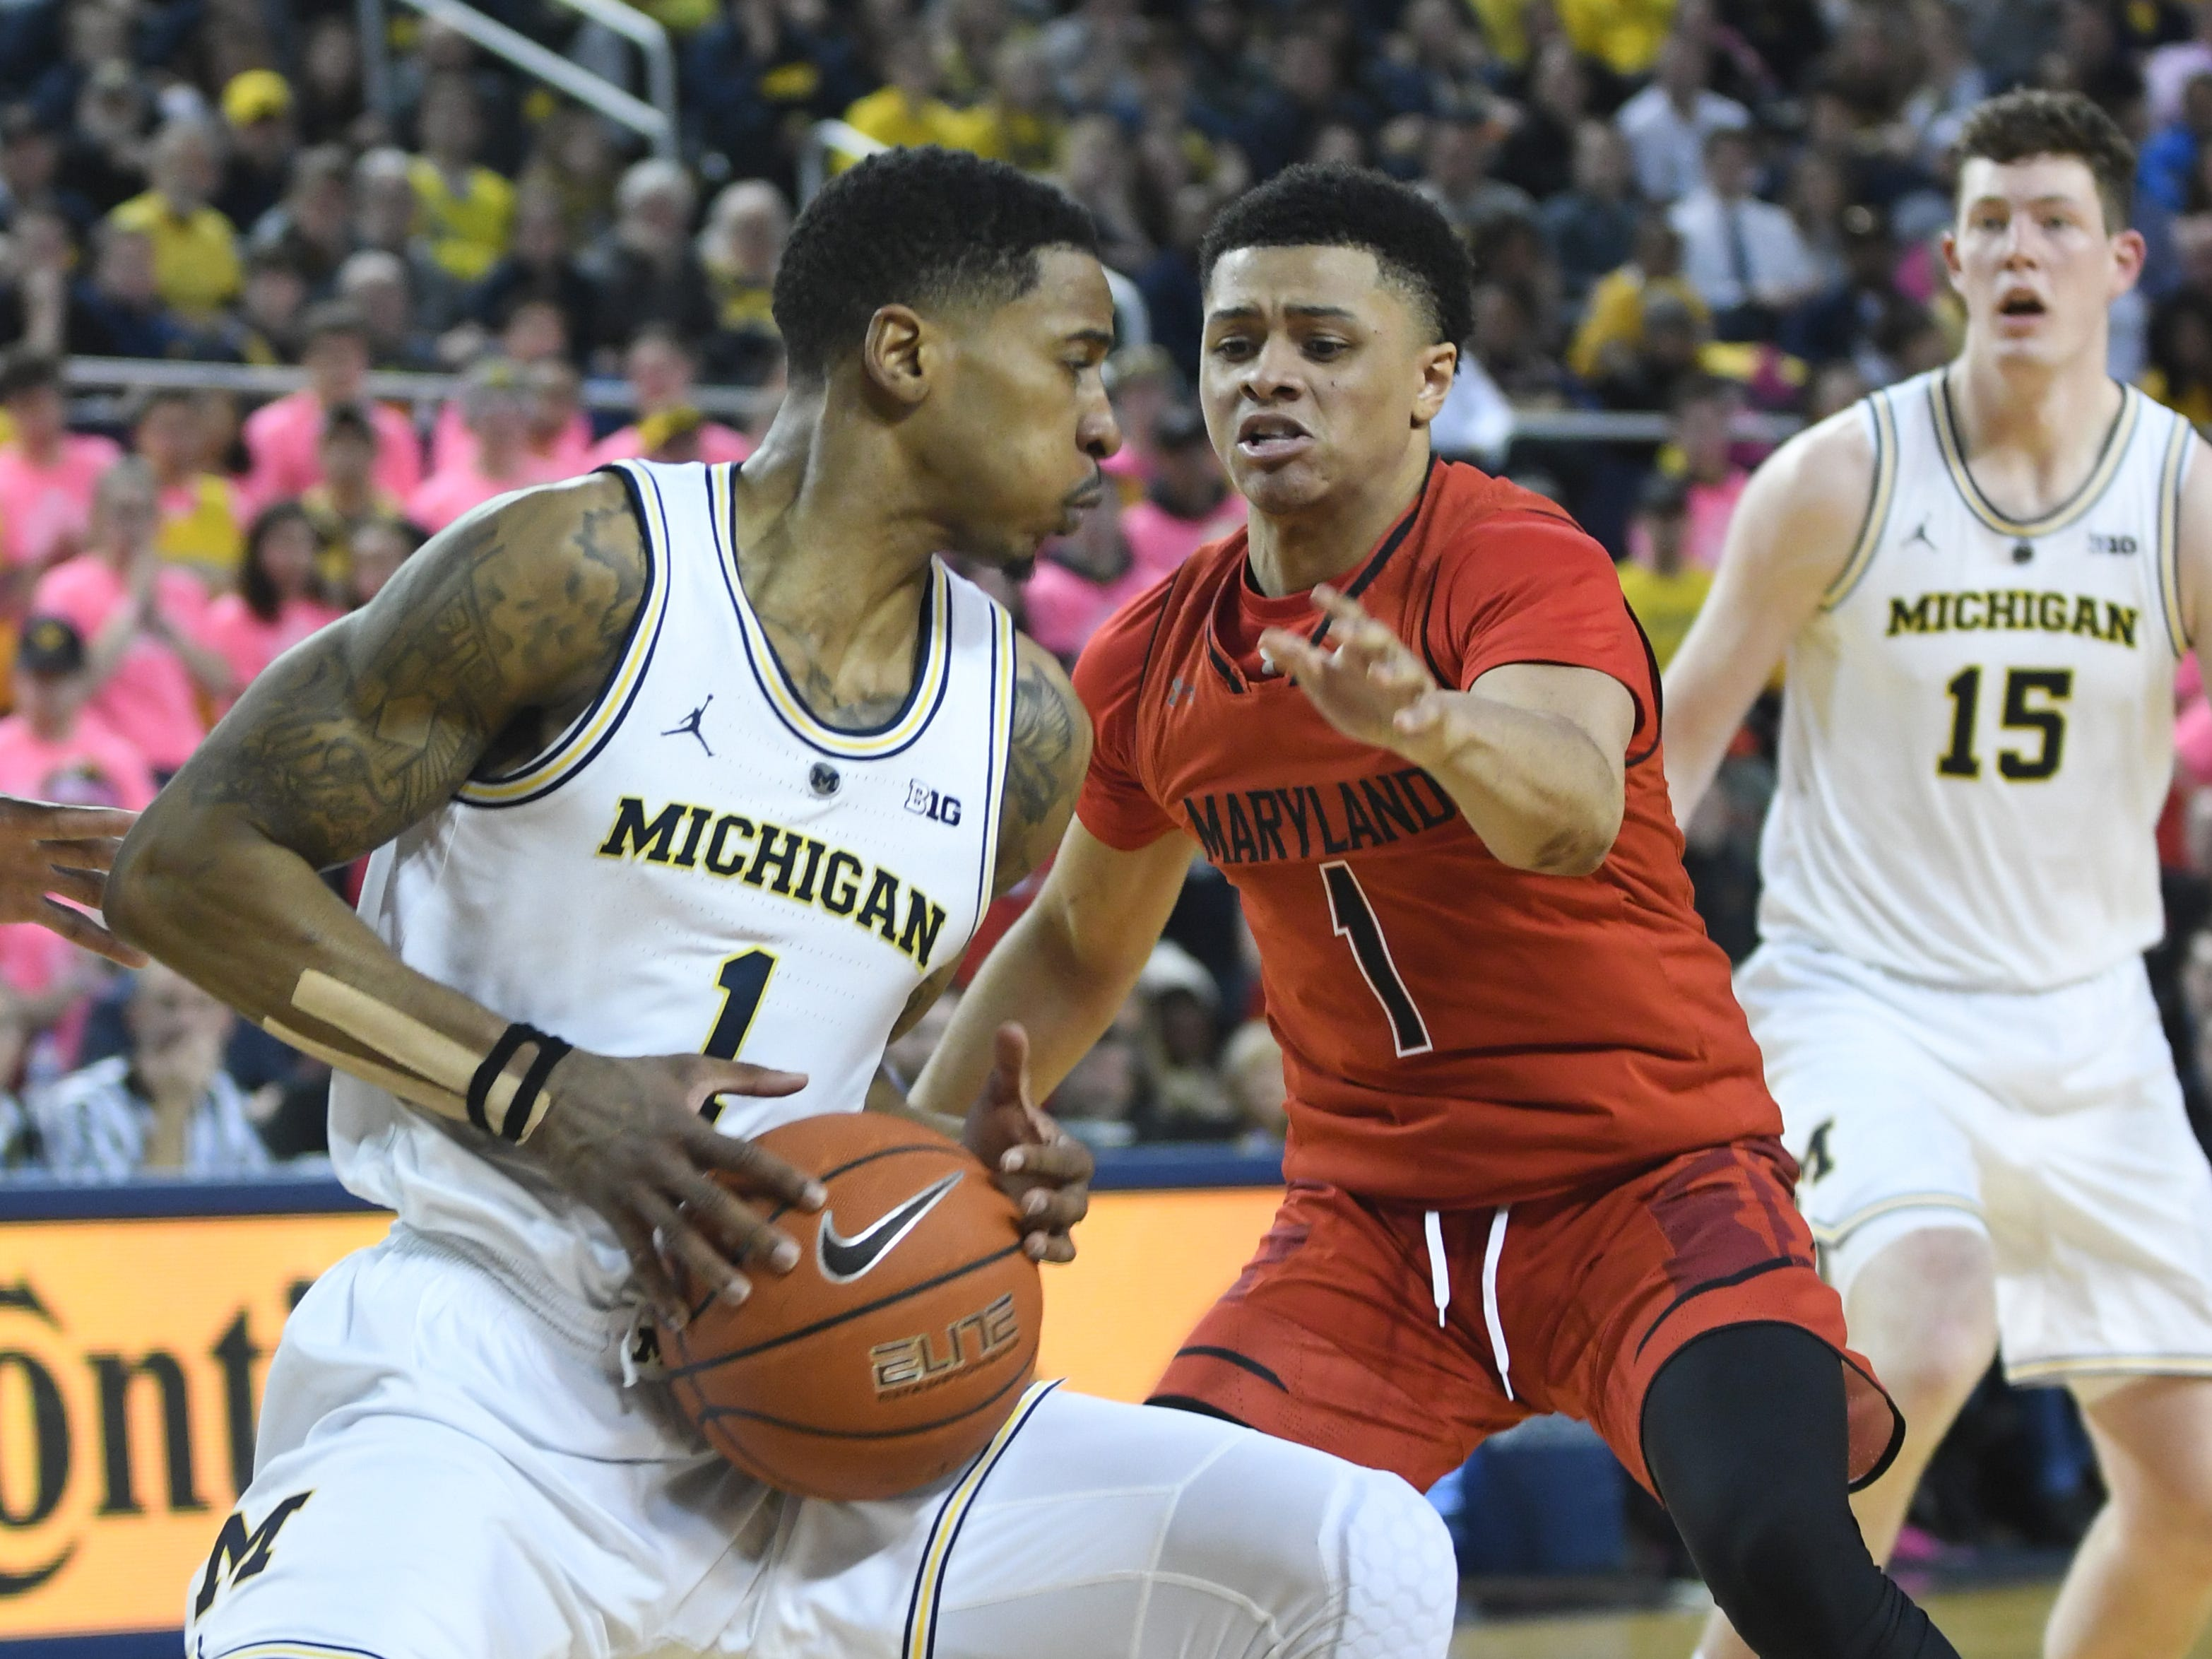 Michigan's Charles Matthews works against Maryland's Anthony Cowan Jr. in the second half.